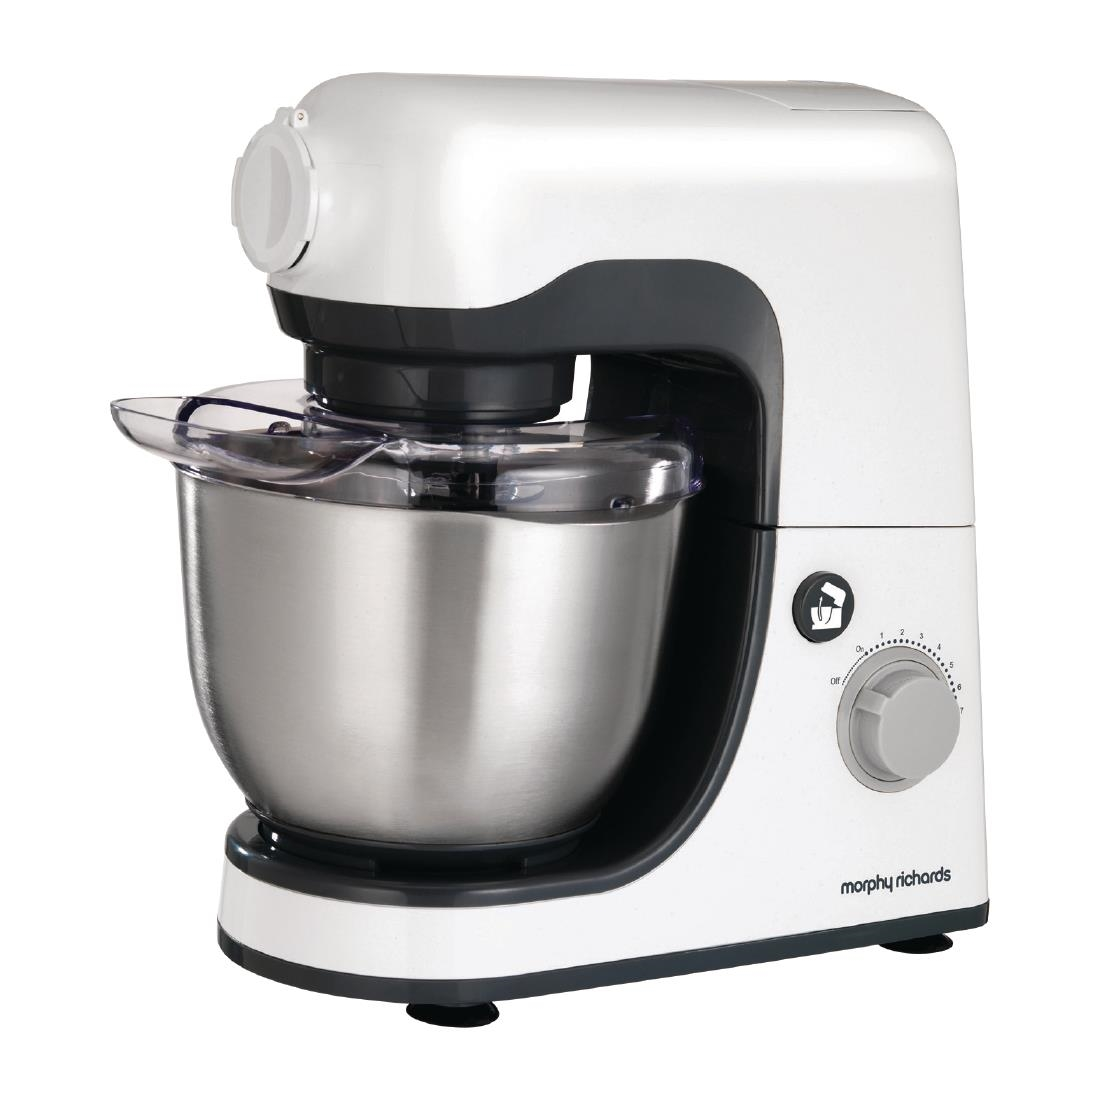 Image of Morphy Richards Stand Mixer 400023